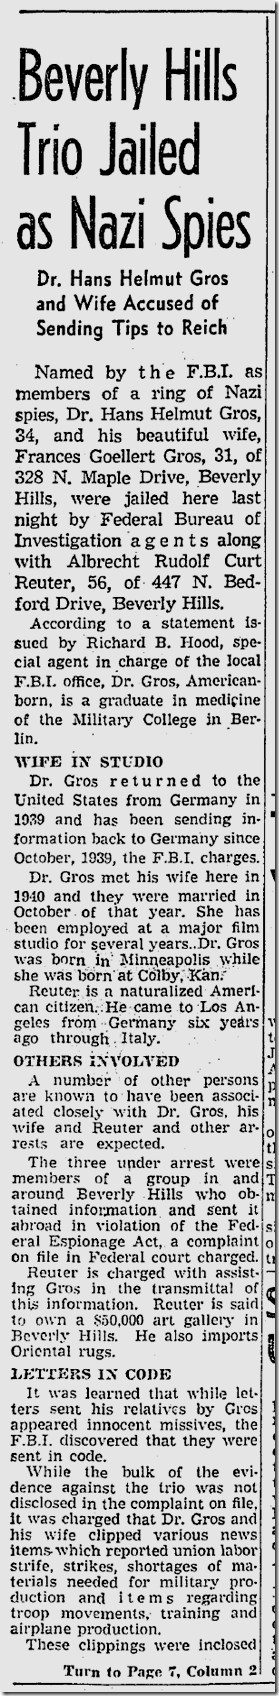 Jan. 29, 1942, Spy Ring